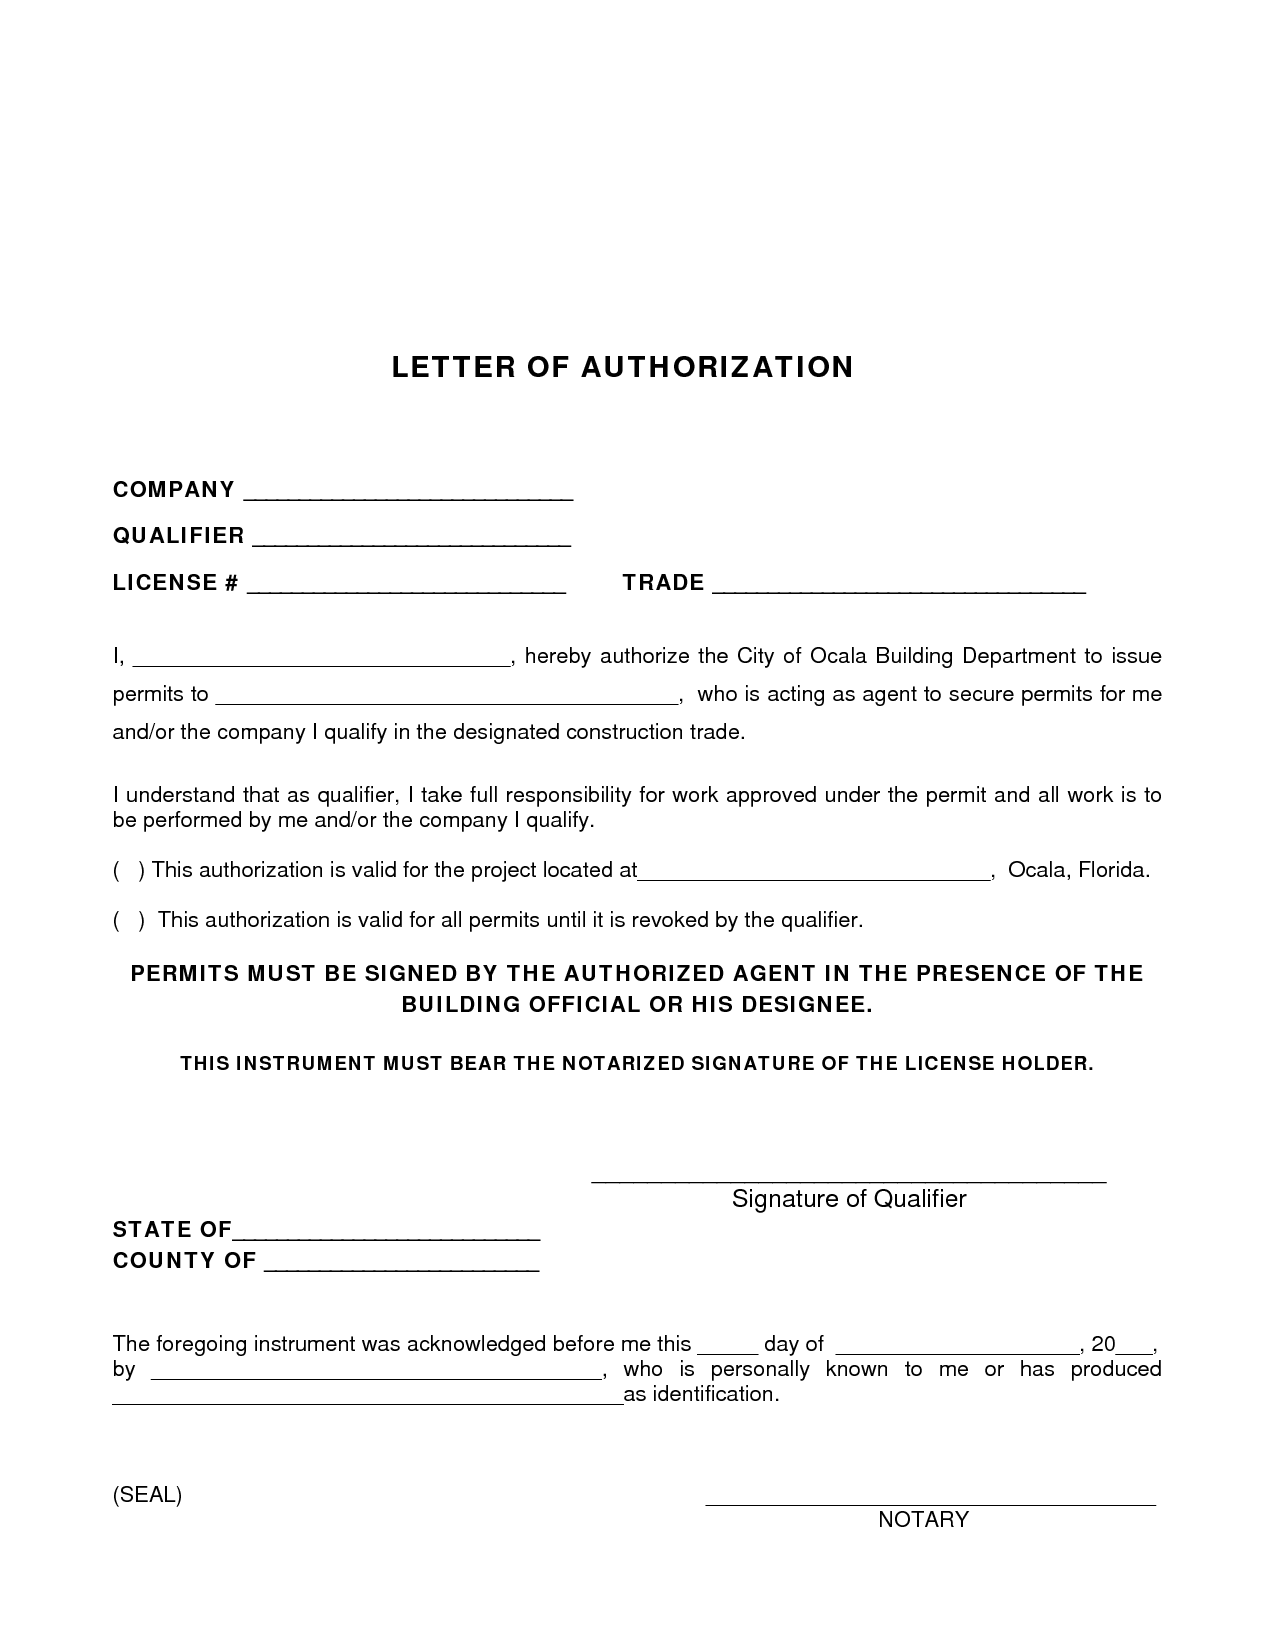 Permit Authorization Letter Sample Process Math Worksheet